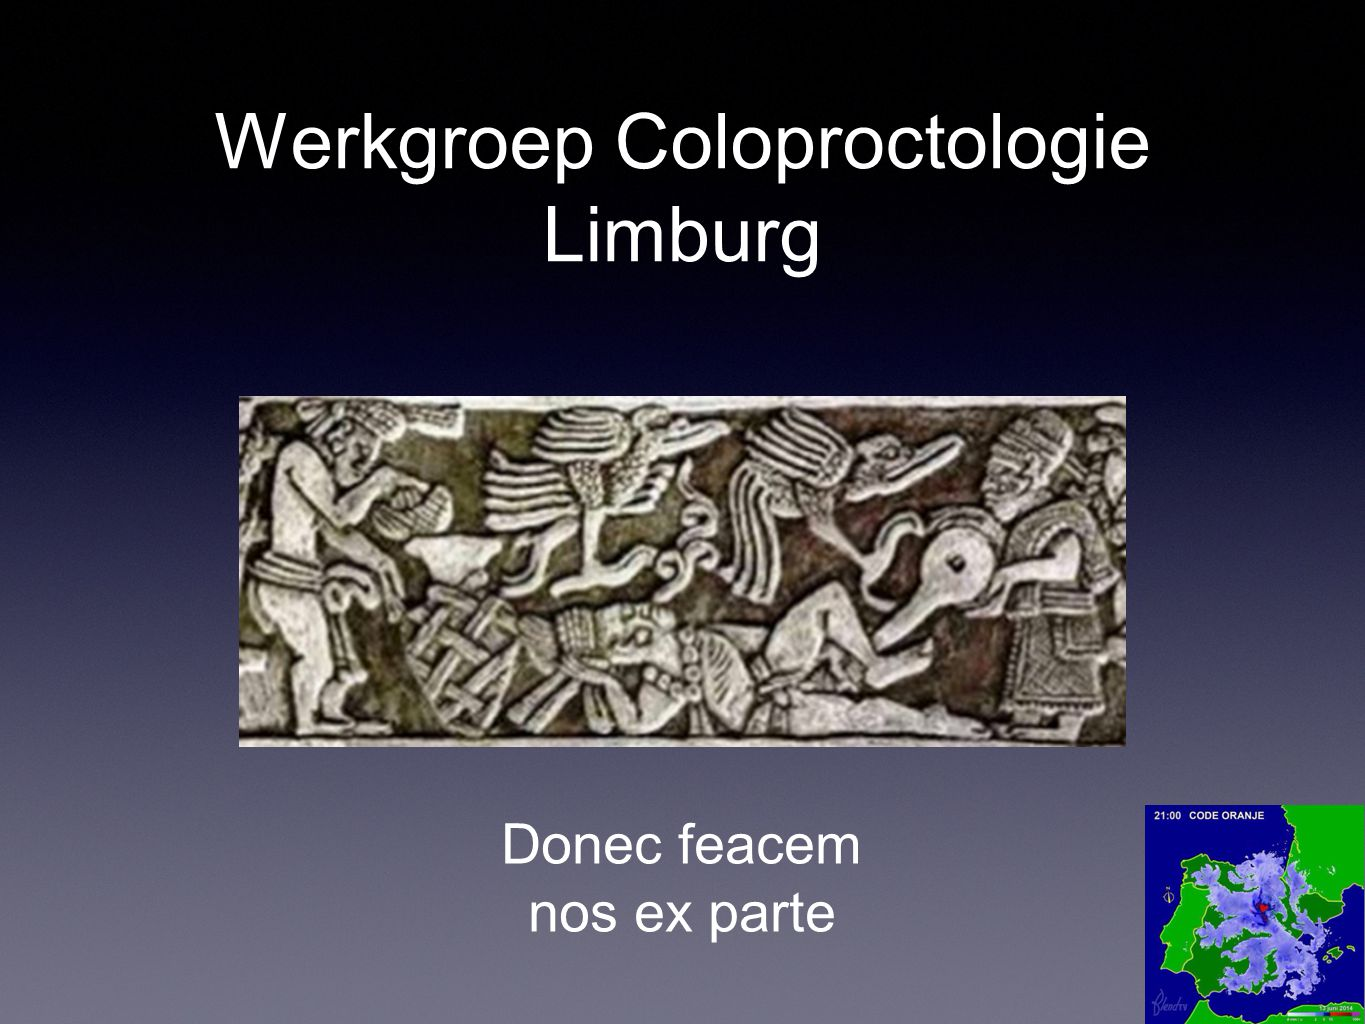 Werkgroep Coloproctologie Limburg